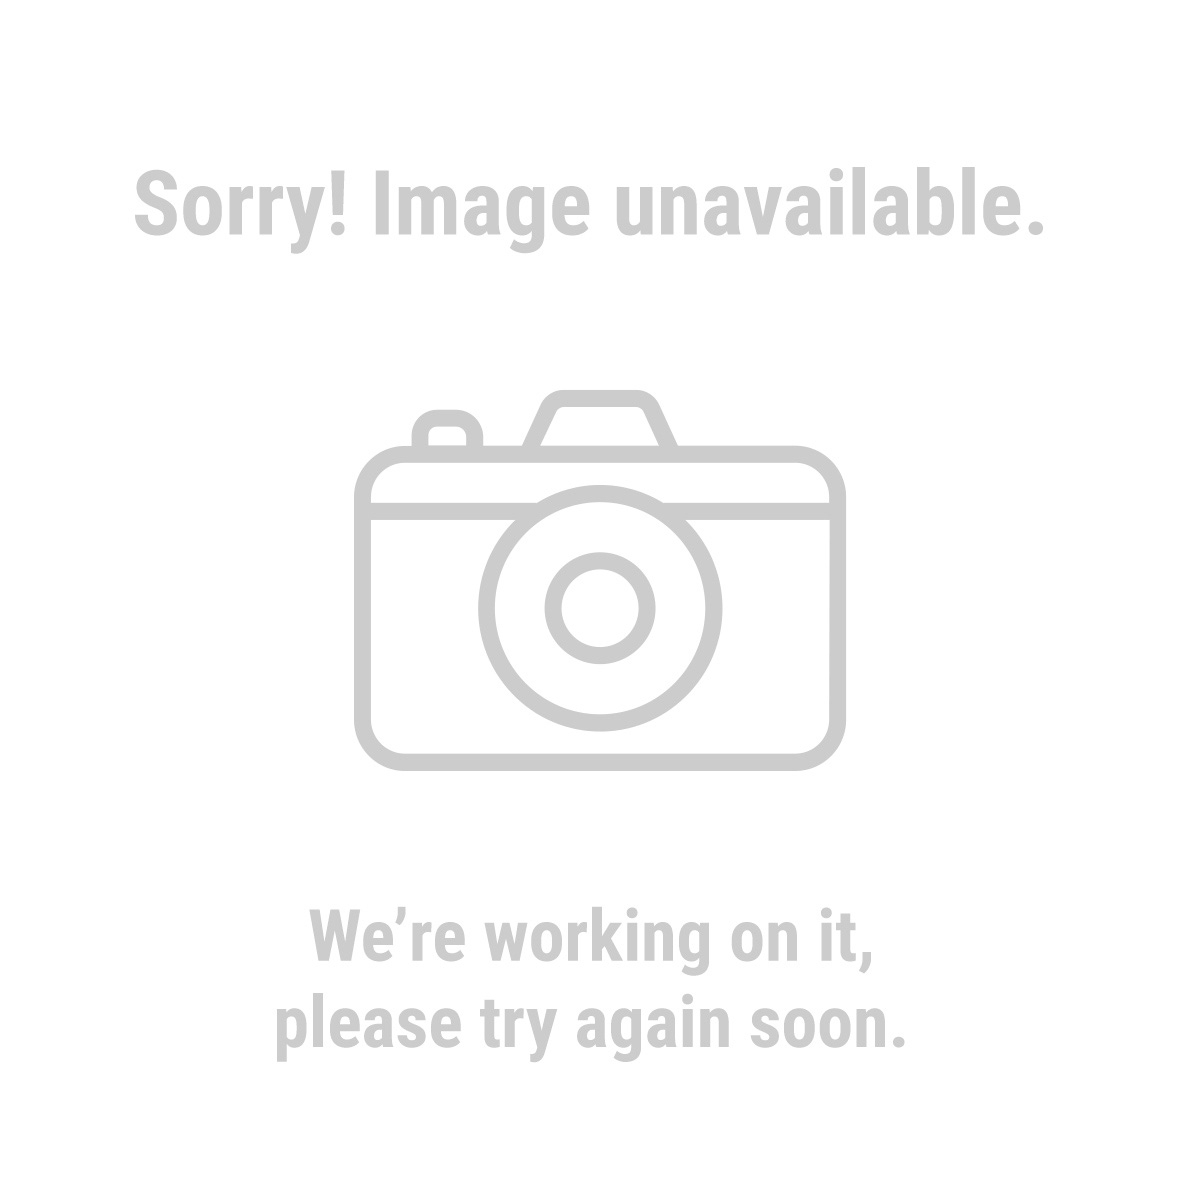 60 Piece Alloy Steel SAE/Metric Tap and Die Set